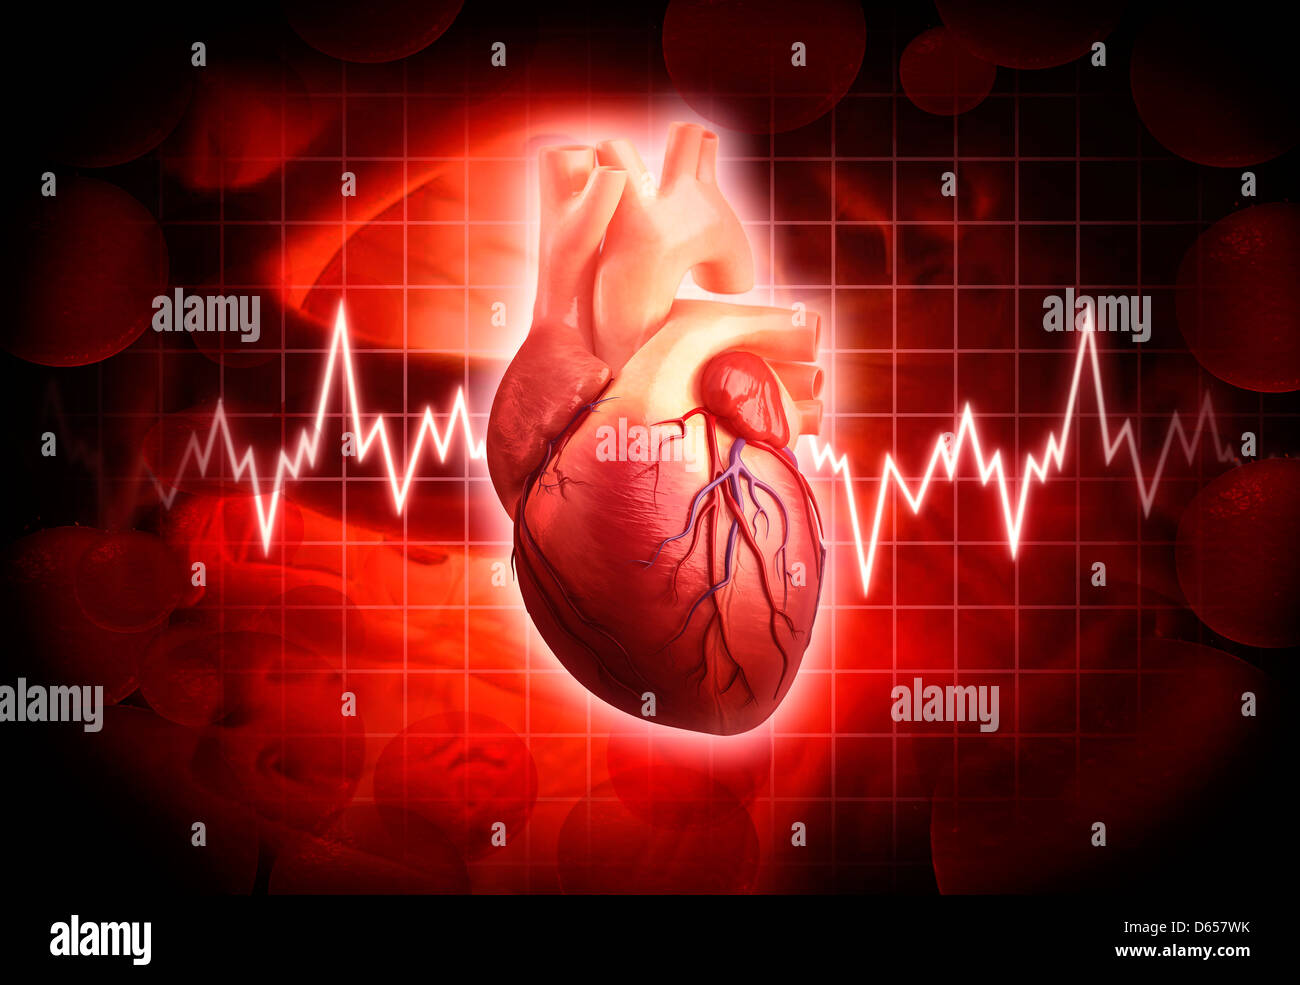 Human heart, artwork - Stock Image